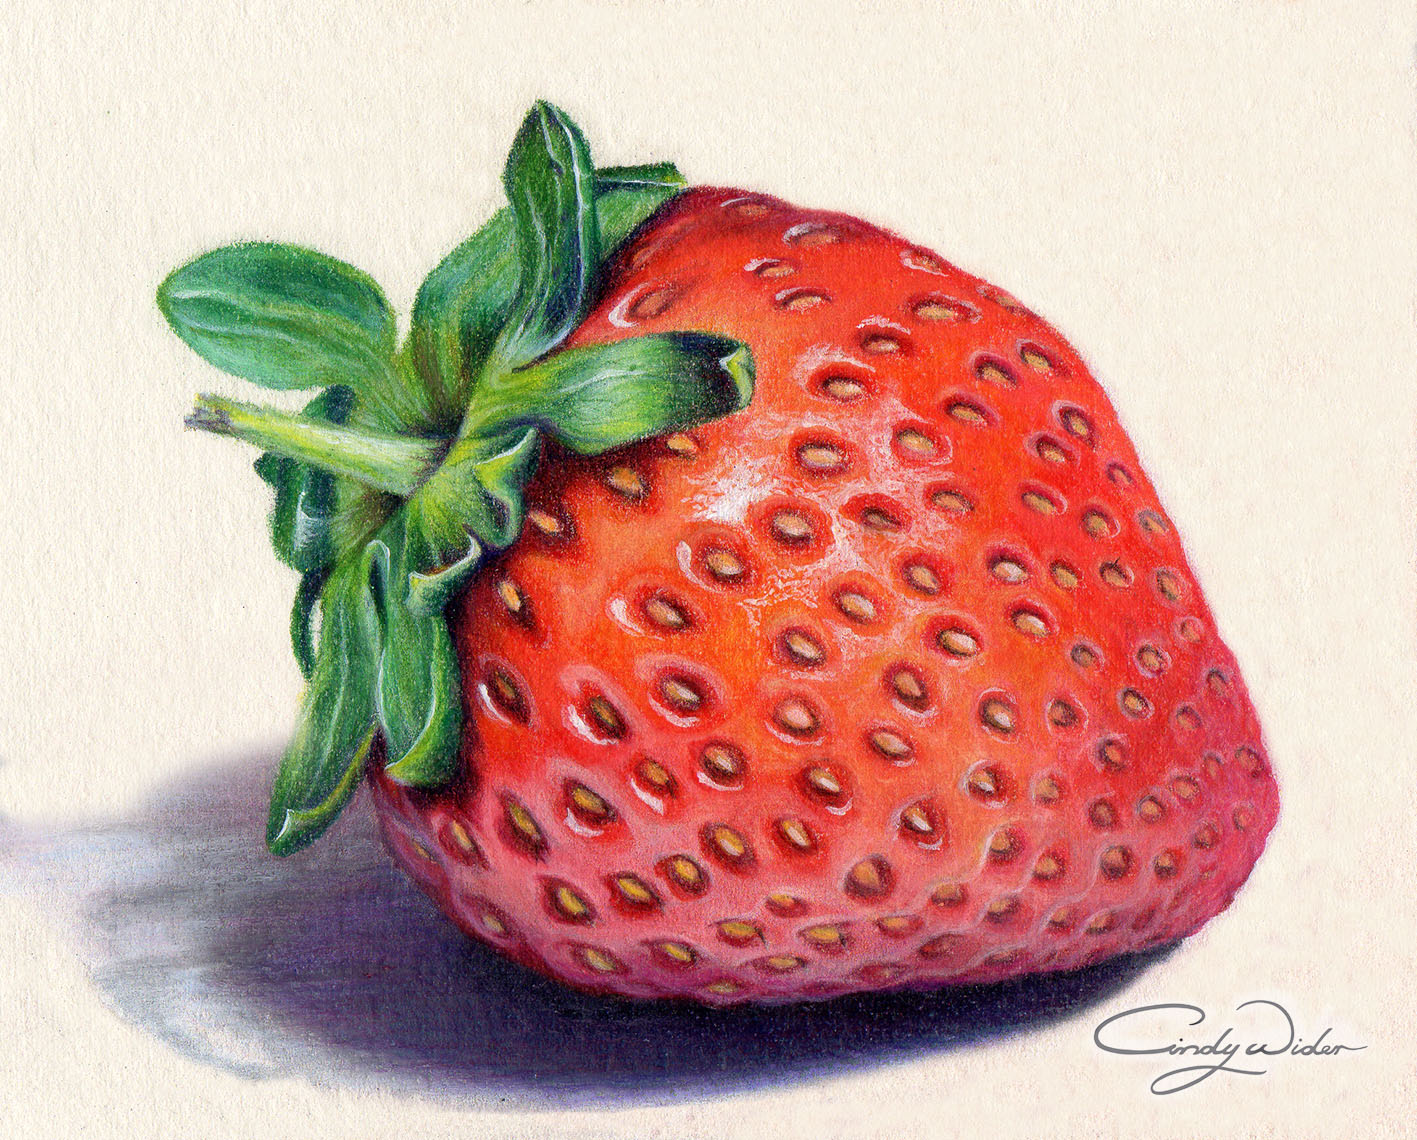 Drawn strawberry strawberry leaf Waterford was Pencils Prismacolour Leaves